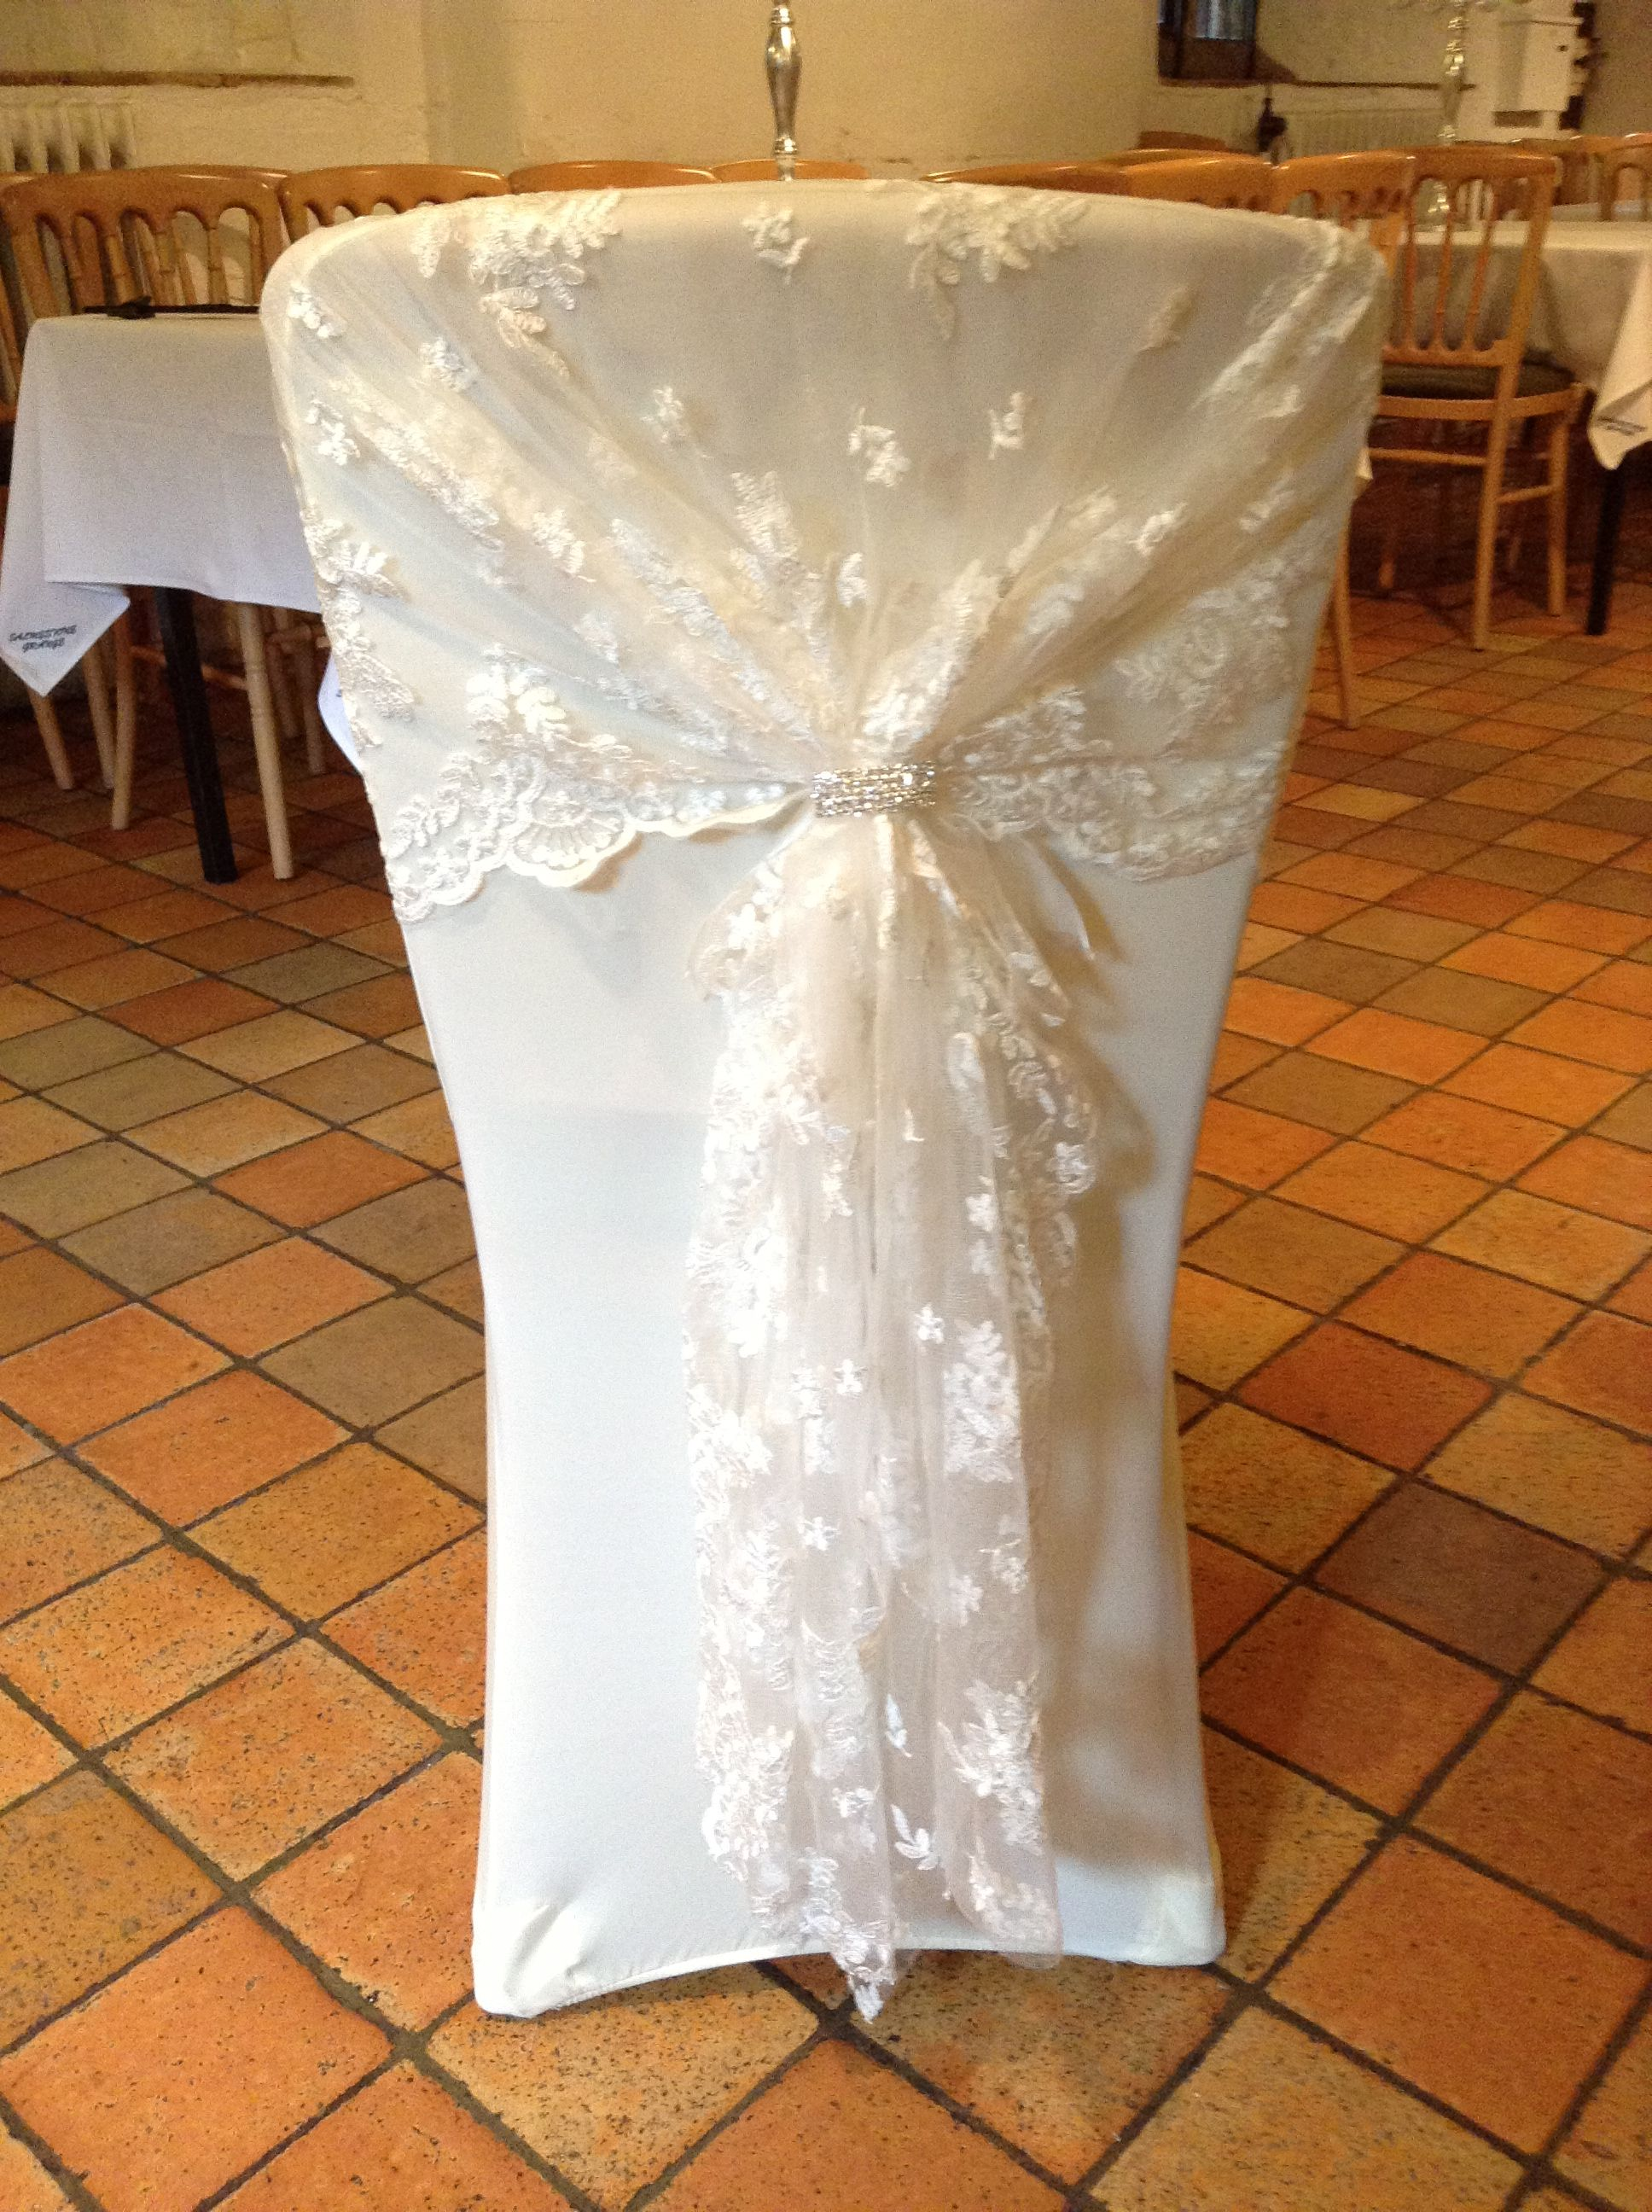 Banquet Chair Covers Ireland Oztrail Accessories Ivory Lace Hood With Cover Again Can Be Fitted Or Without Suitable For All Styles